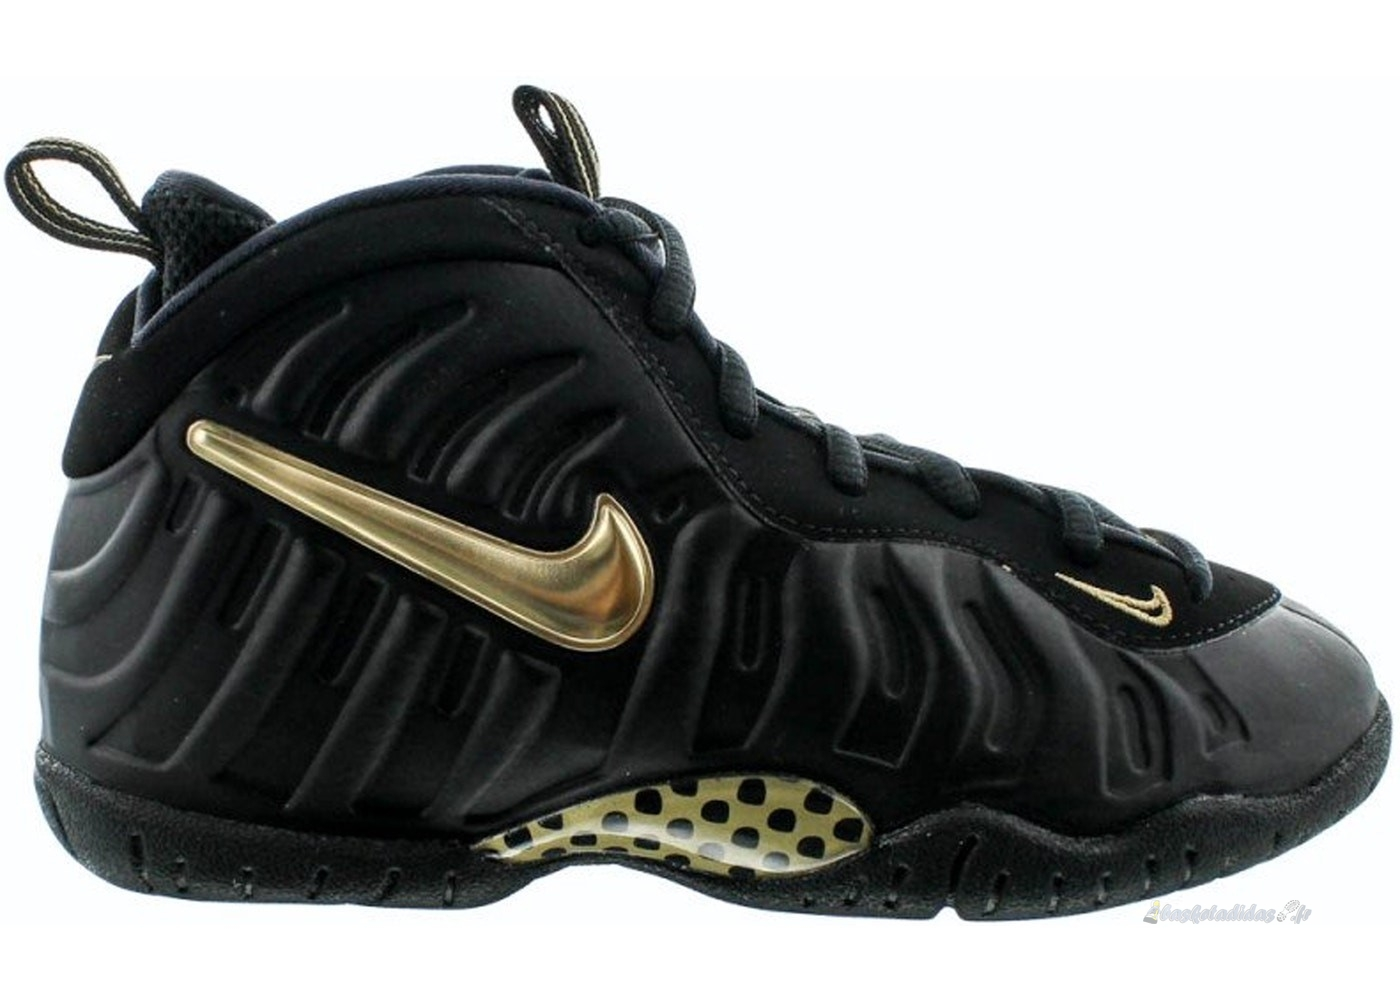 Chaussure de Basket Nike Air Foamposite Pro (Ps) Noir Or (843755-010)